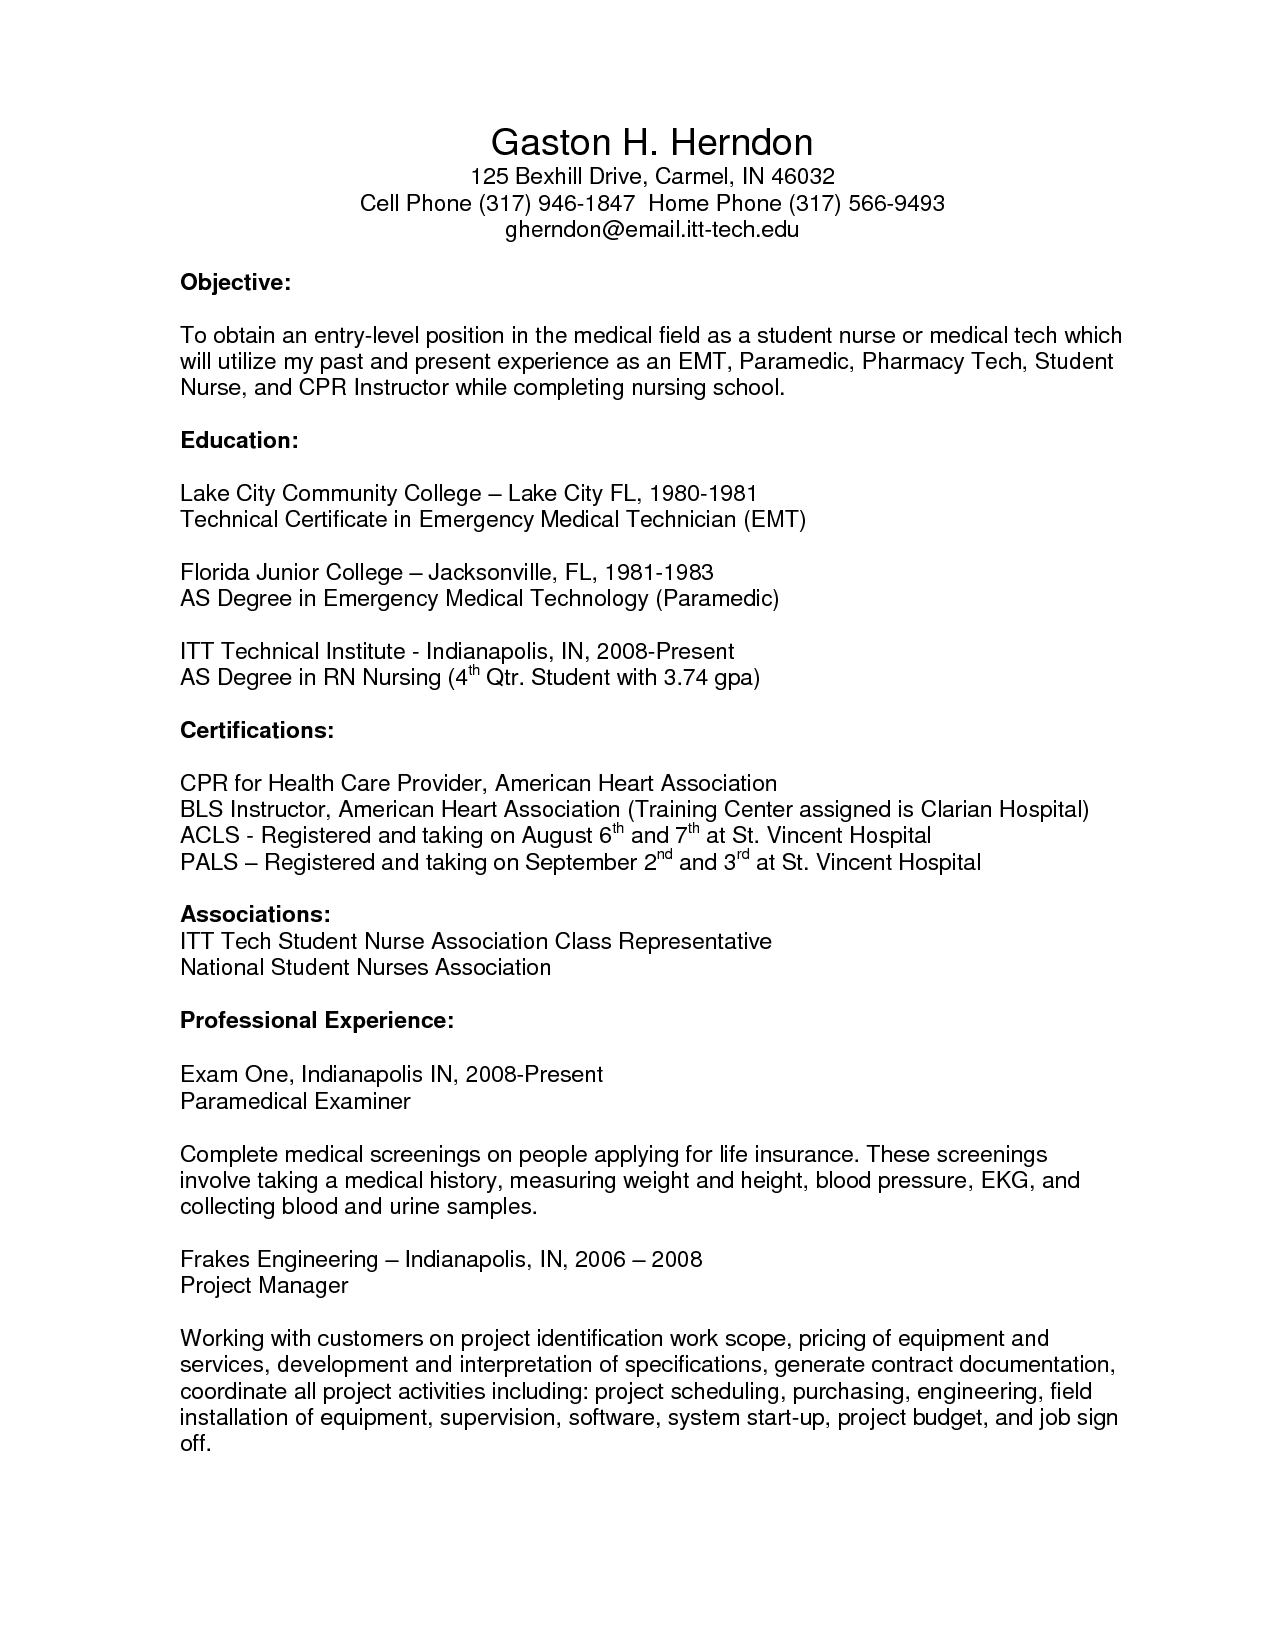 Entry Level Nurse Resume Examples - http://www.jobresume.website ...